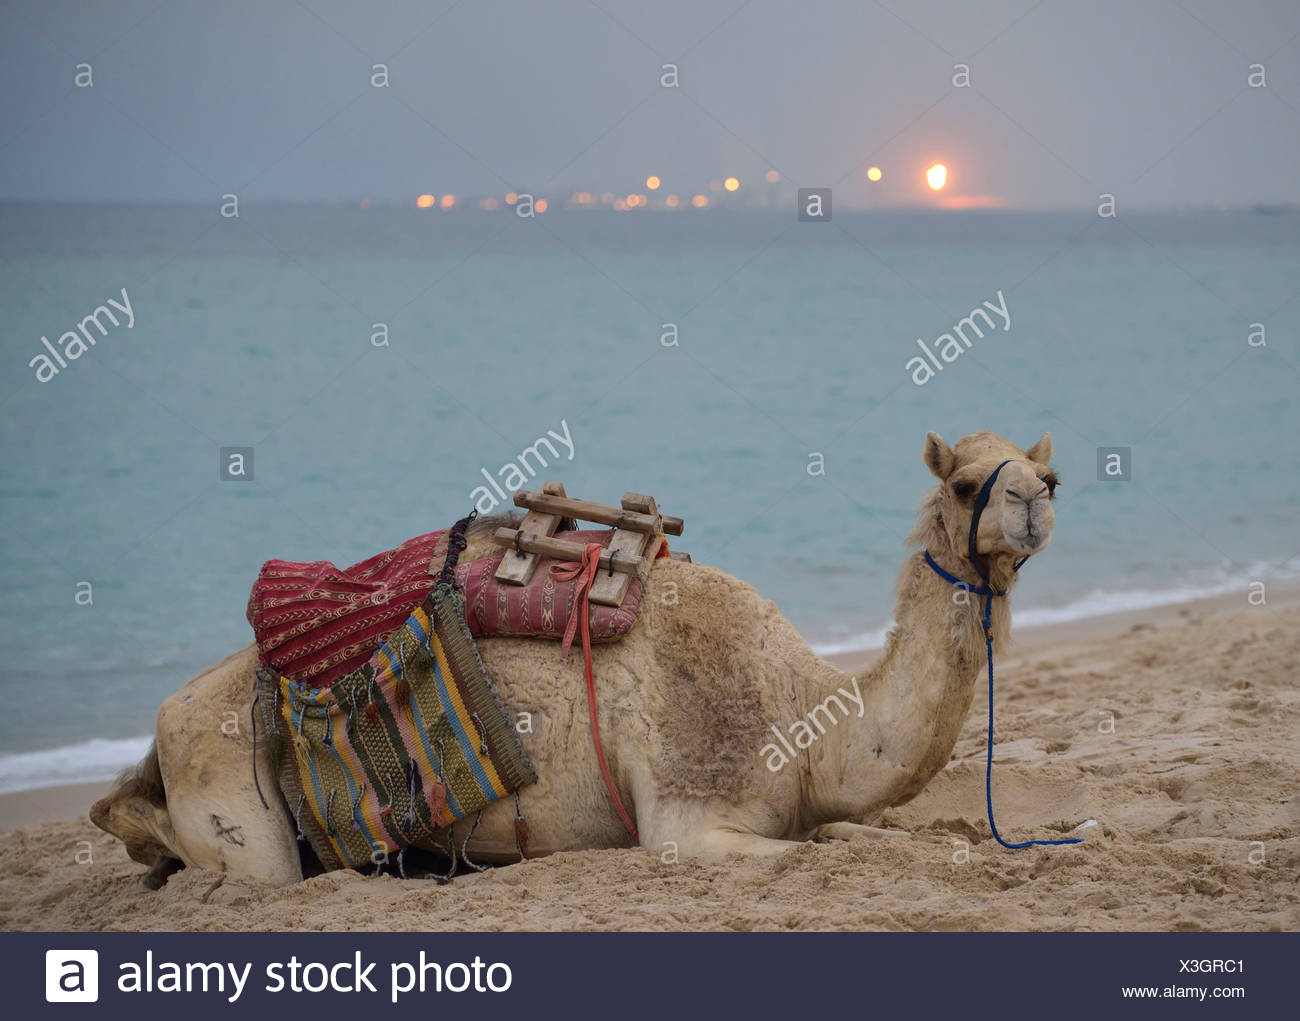 Camel lying on the beach, Inland Sea, desert miracle of Qatar, petrochemical plant, gas production facility at back - Stock Image